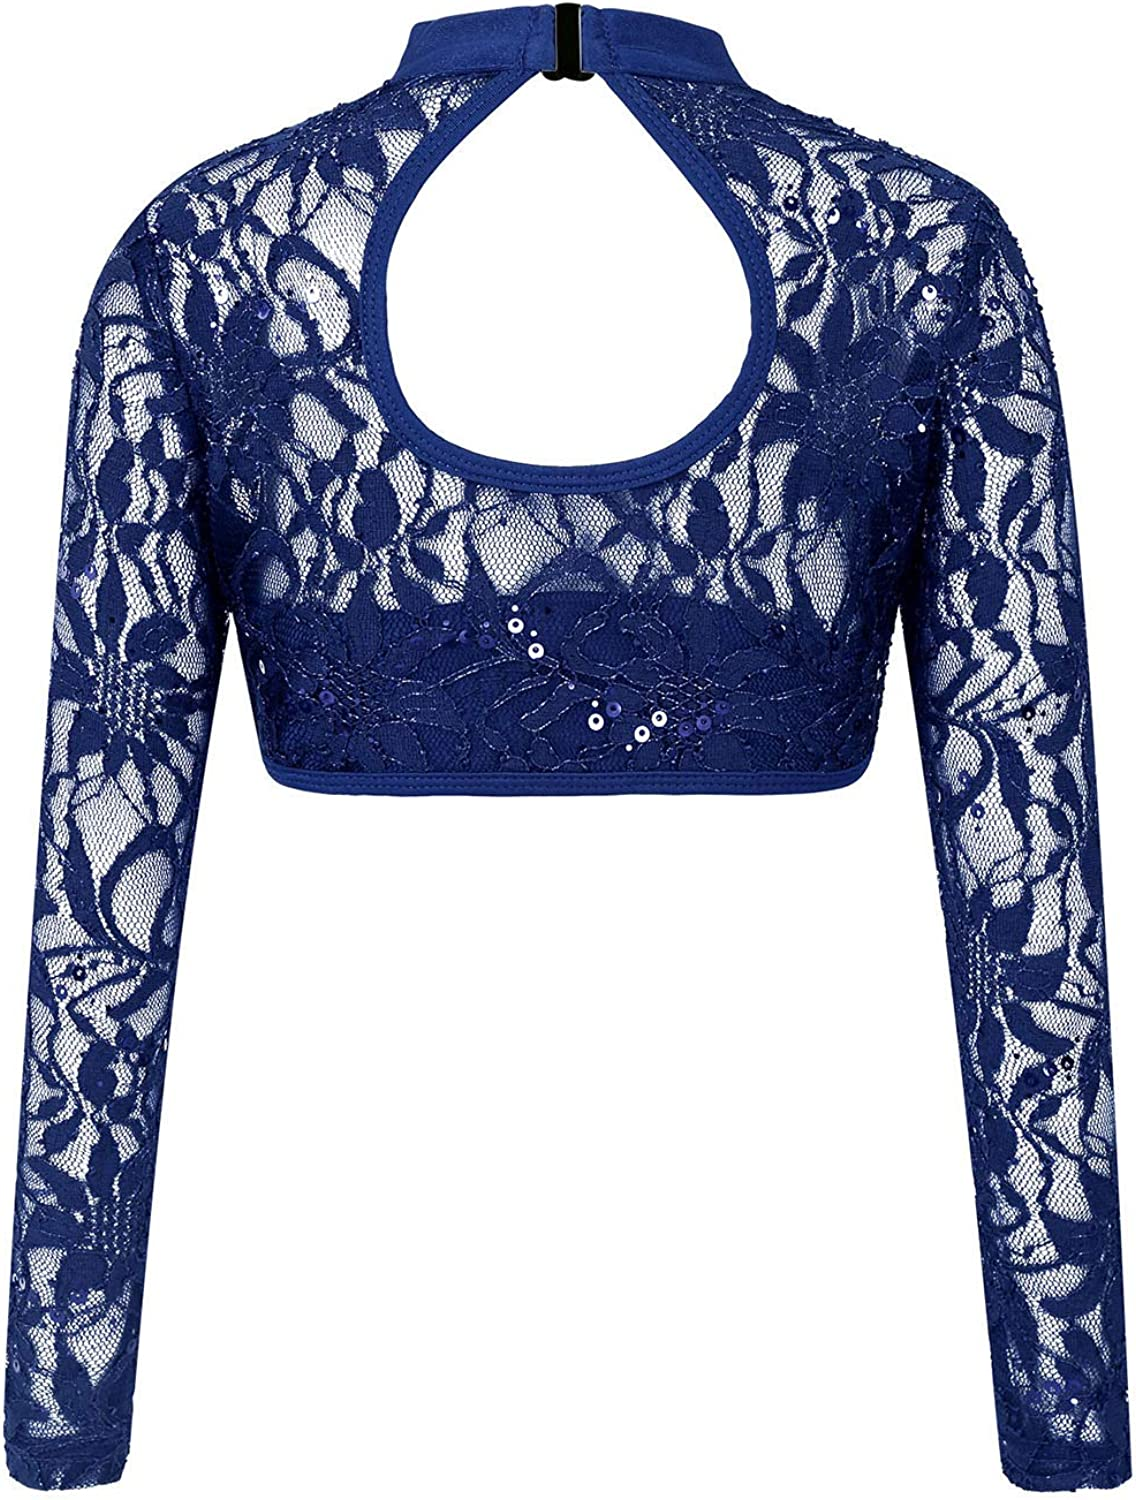 Oyolan Kids Girls Jazz Floral Lace Sequins See-Through Lace Keyhole Back Crop Top for Latin Sports Dance